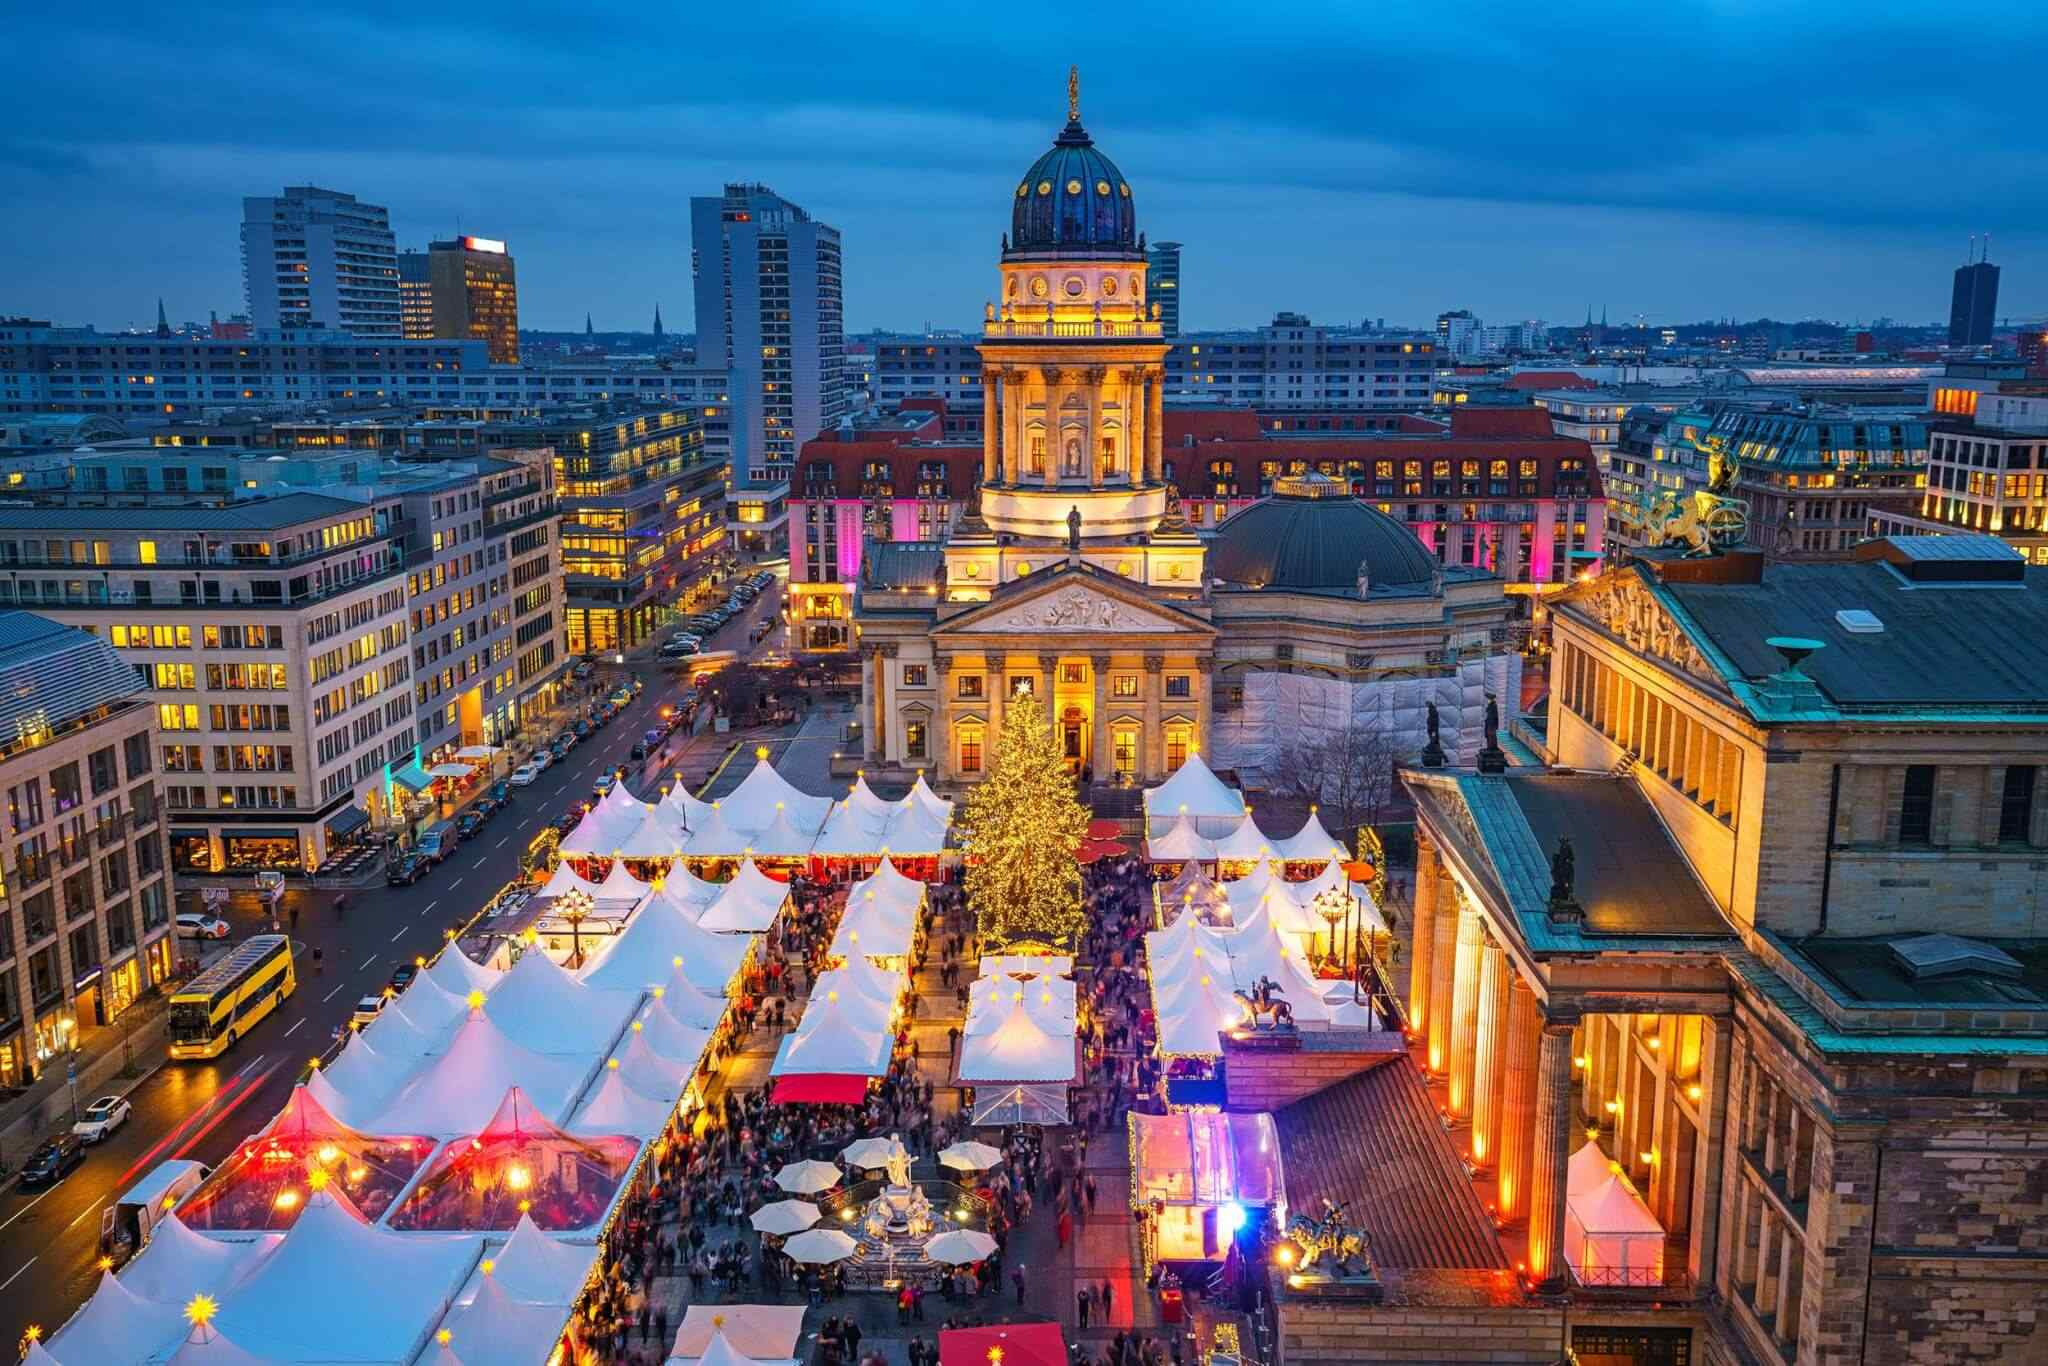 https://www.touripp.it/wp-content/uploads/2018/09/destination-berlin-07.jpg